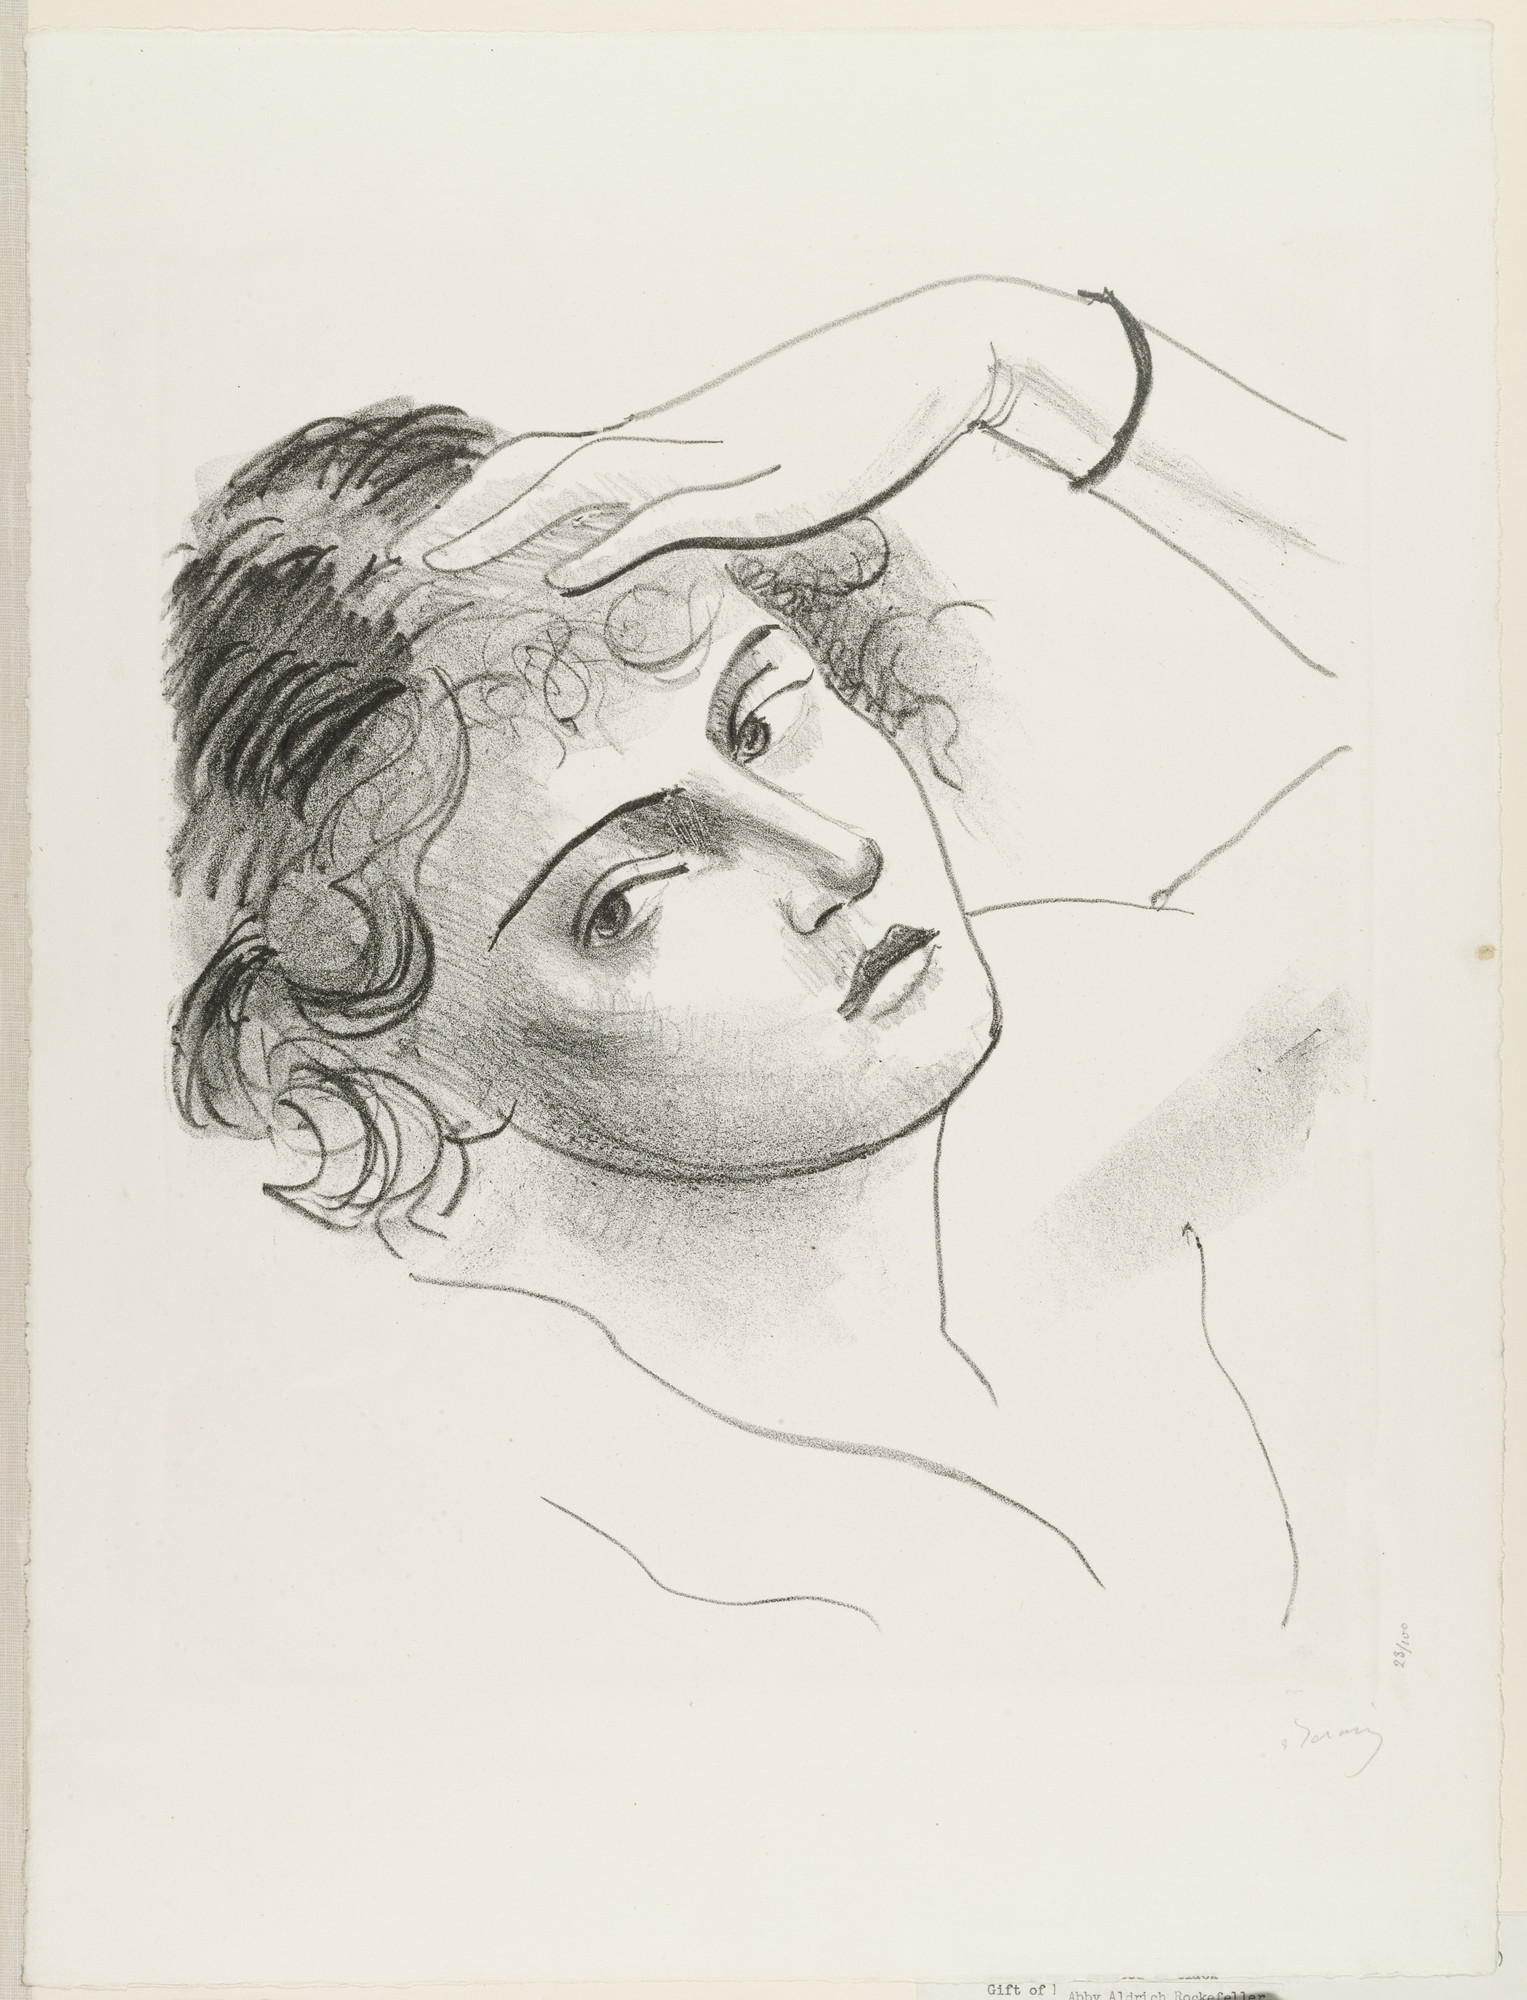 André Derain. Woman Resting Her Head on Her Hand from the portfolio Metamorphoses. (c. 1927)